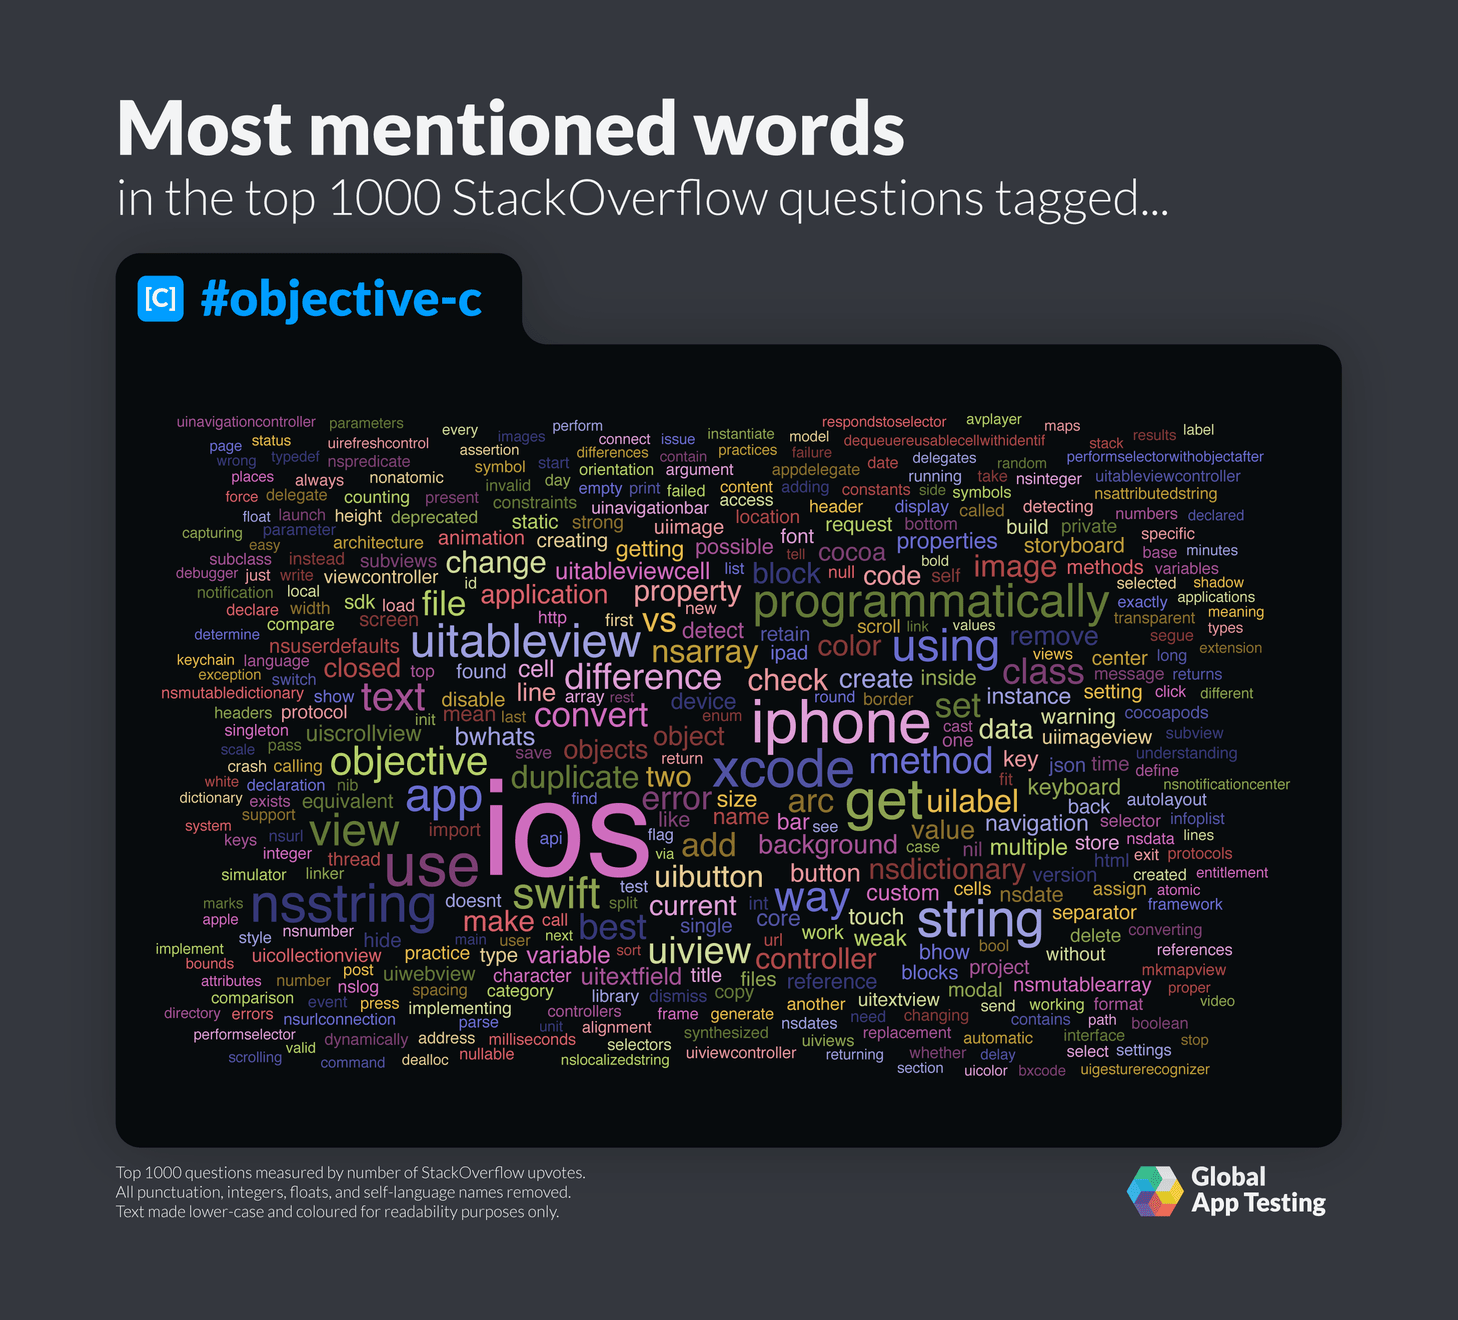 Most mentioned words for Objective-C on StackOverflow.